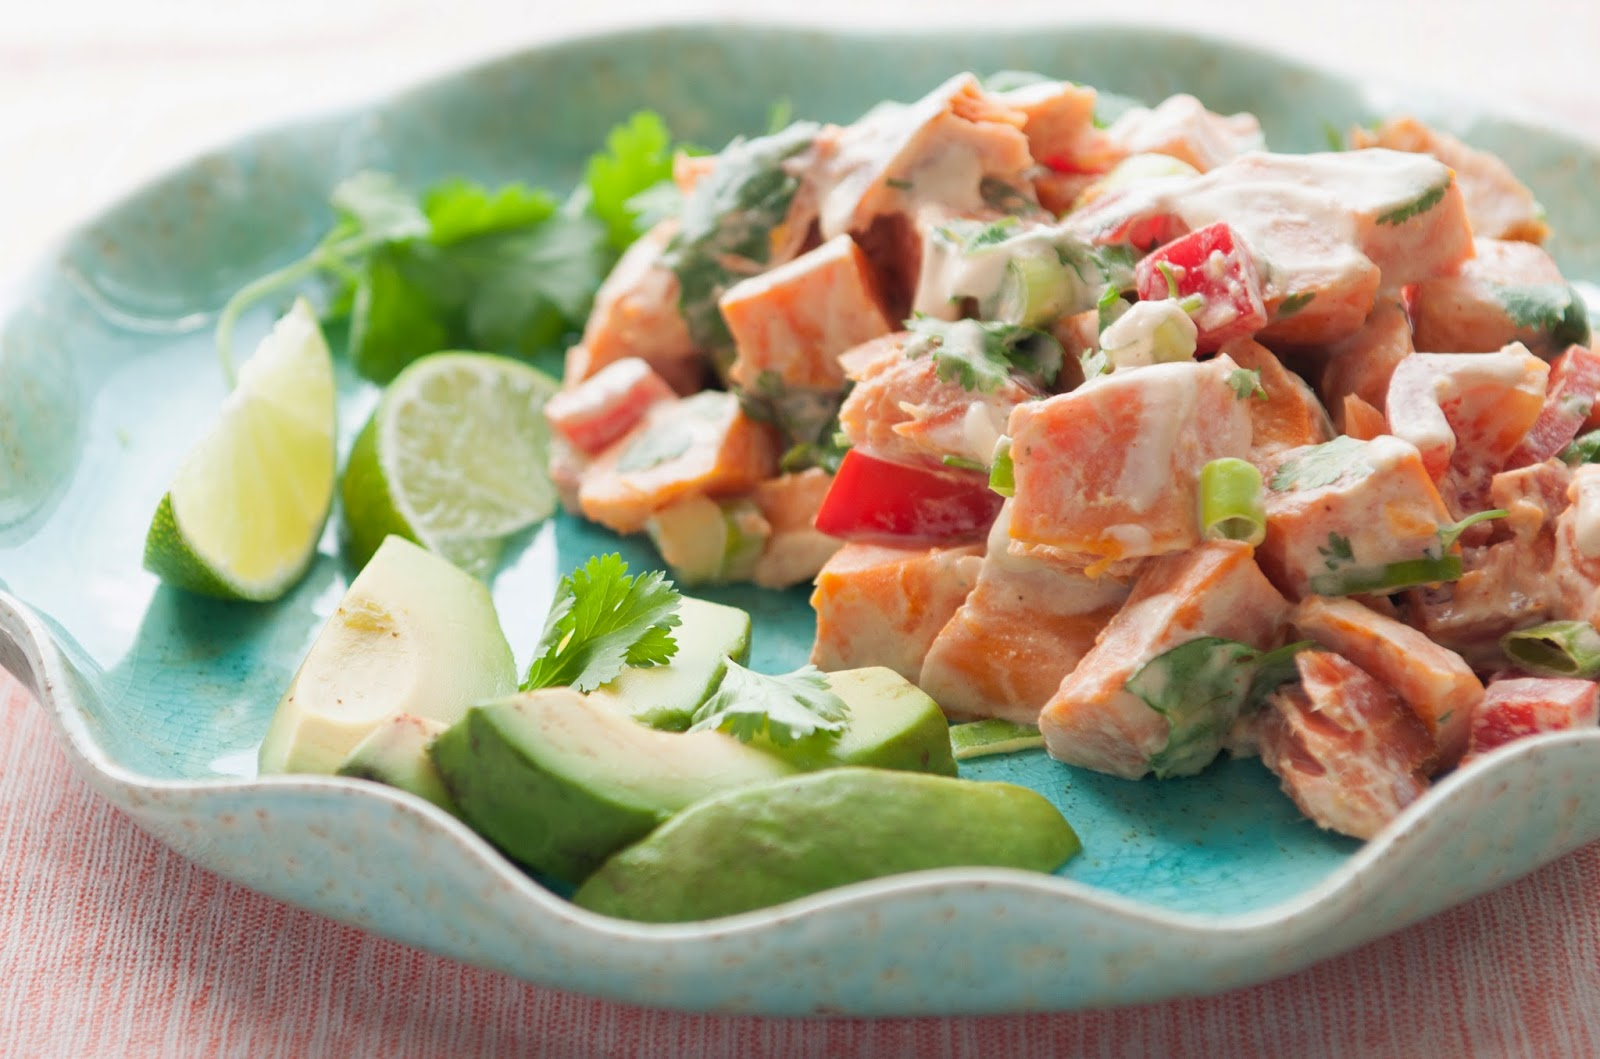 nourishing meals smoked salmon and yam salad with creamy chipotle lime dressing. Black Bedroom Furniture Sets. Home Design Ideas